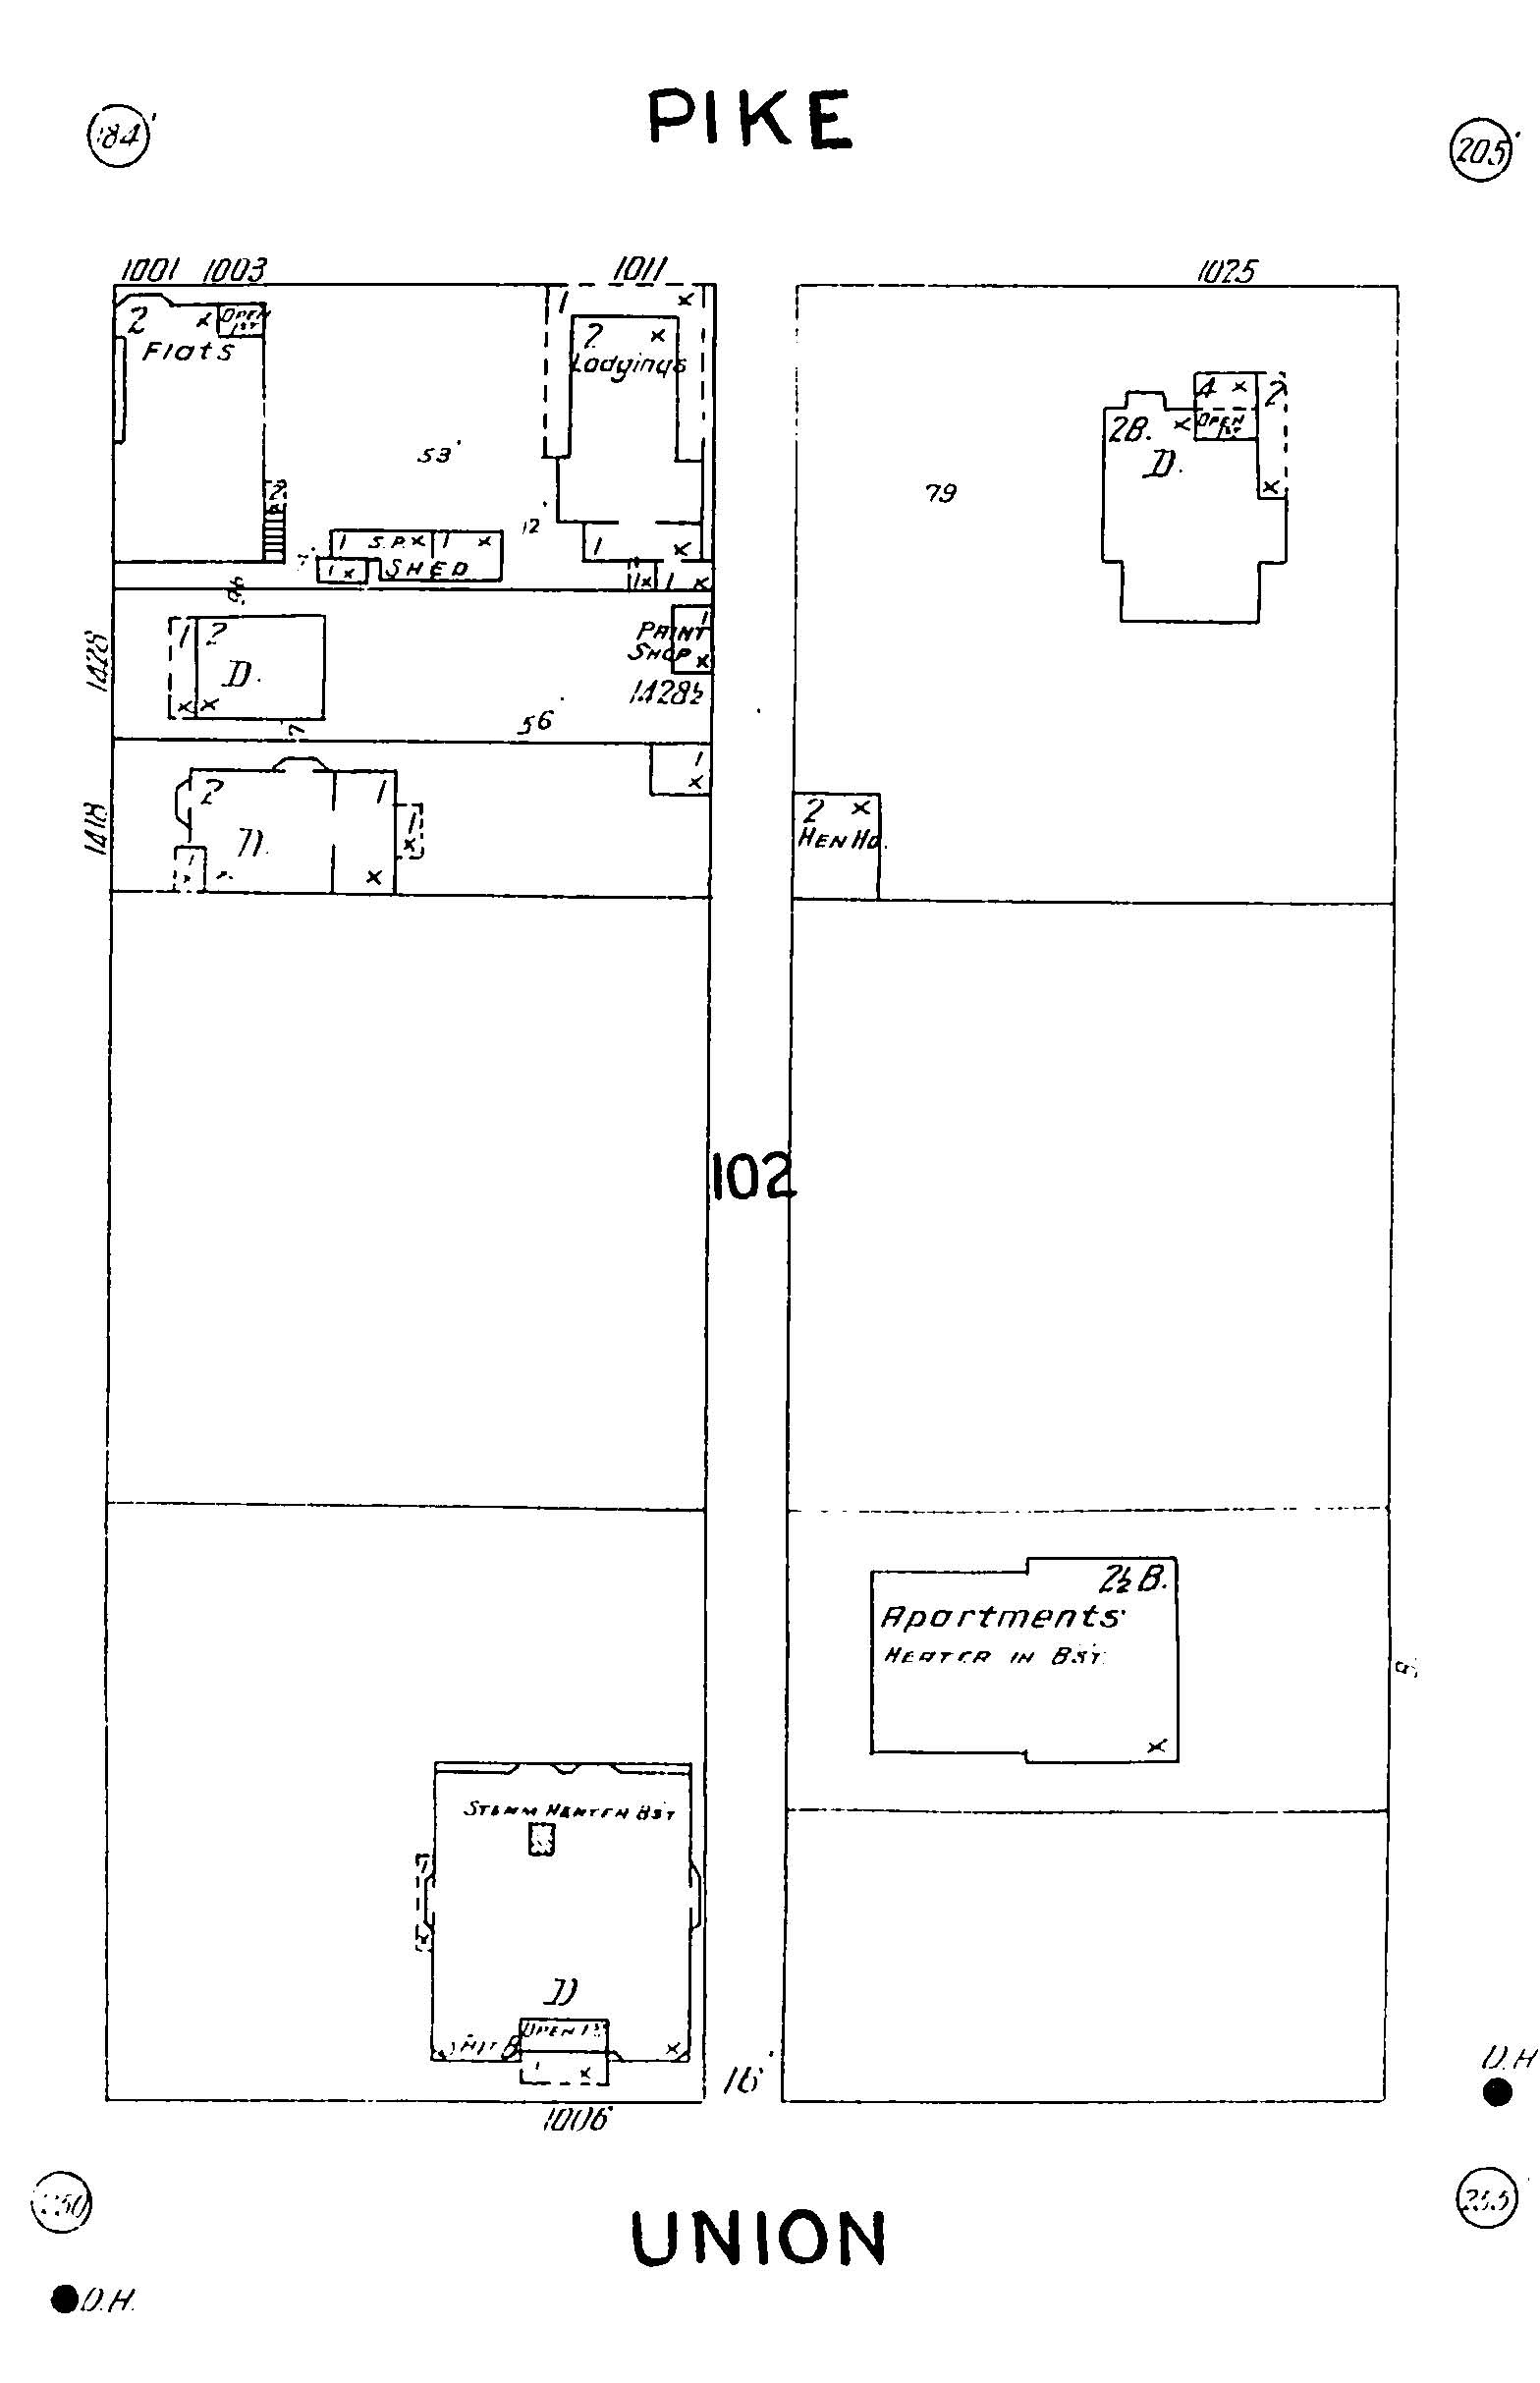 Sanborn Map - 1904-1905 - Block102